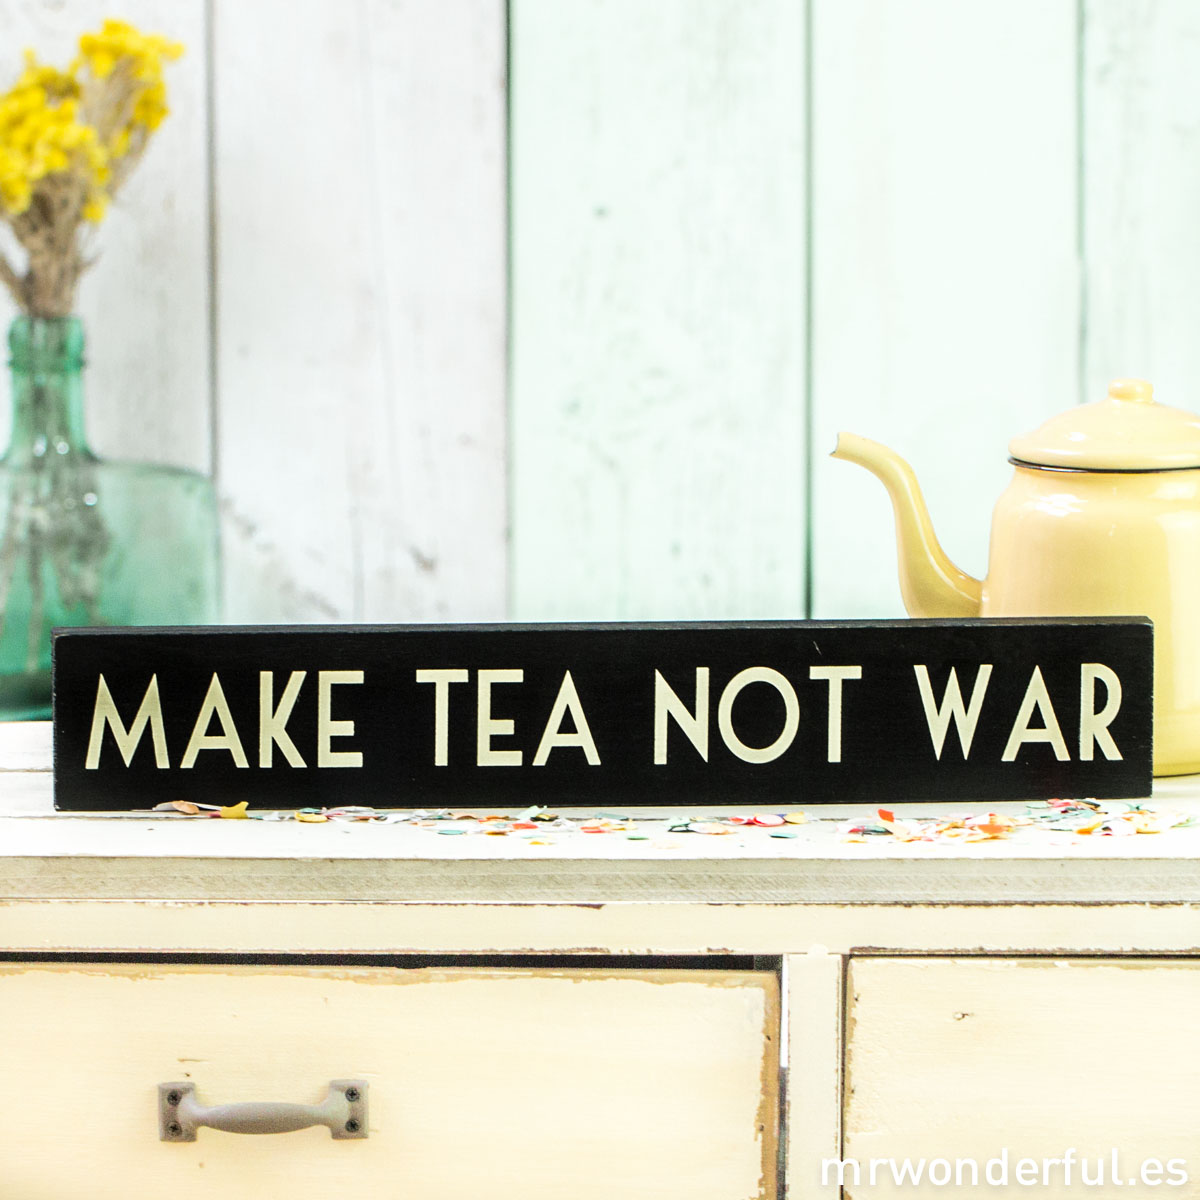 mrwonderful_859_letrero-madera_make-tea-not-war-2